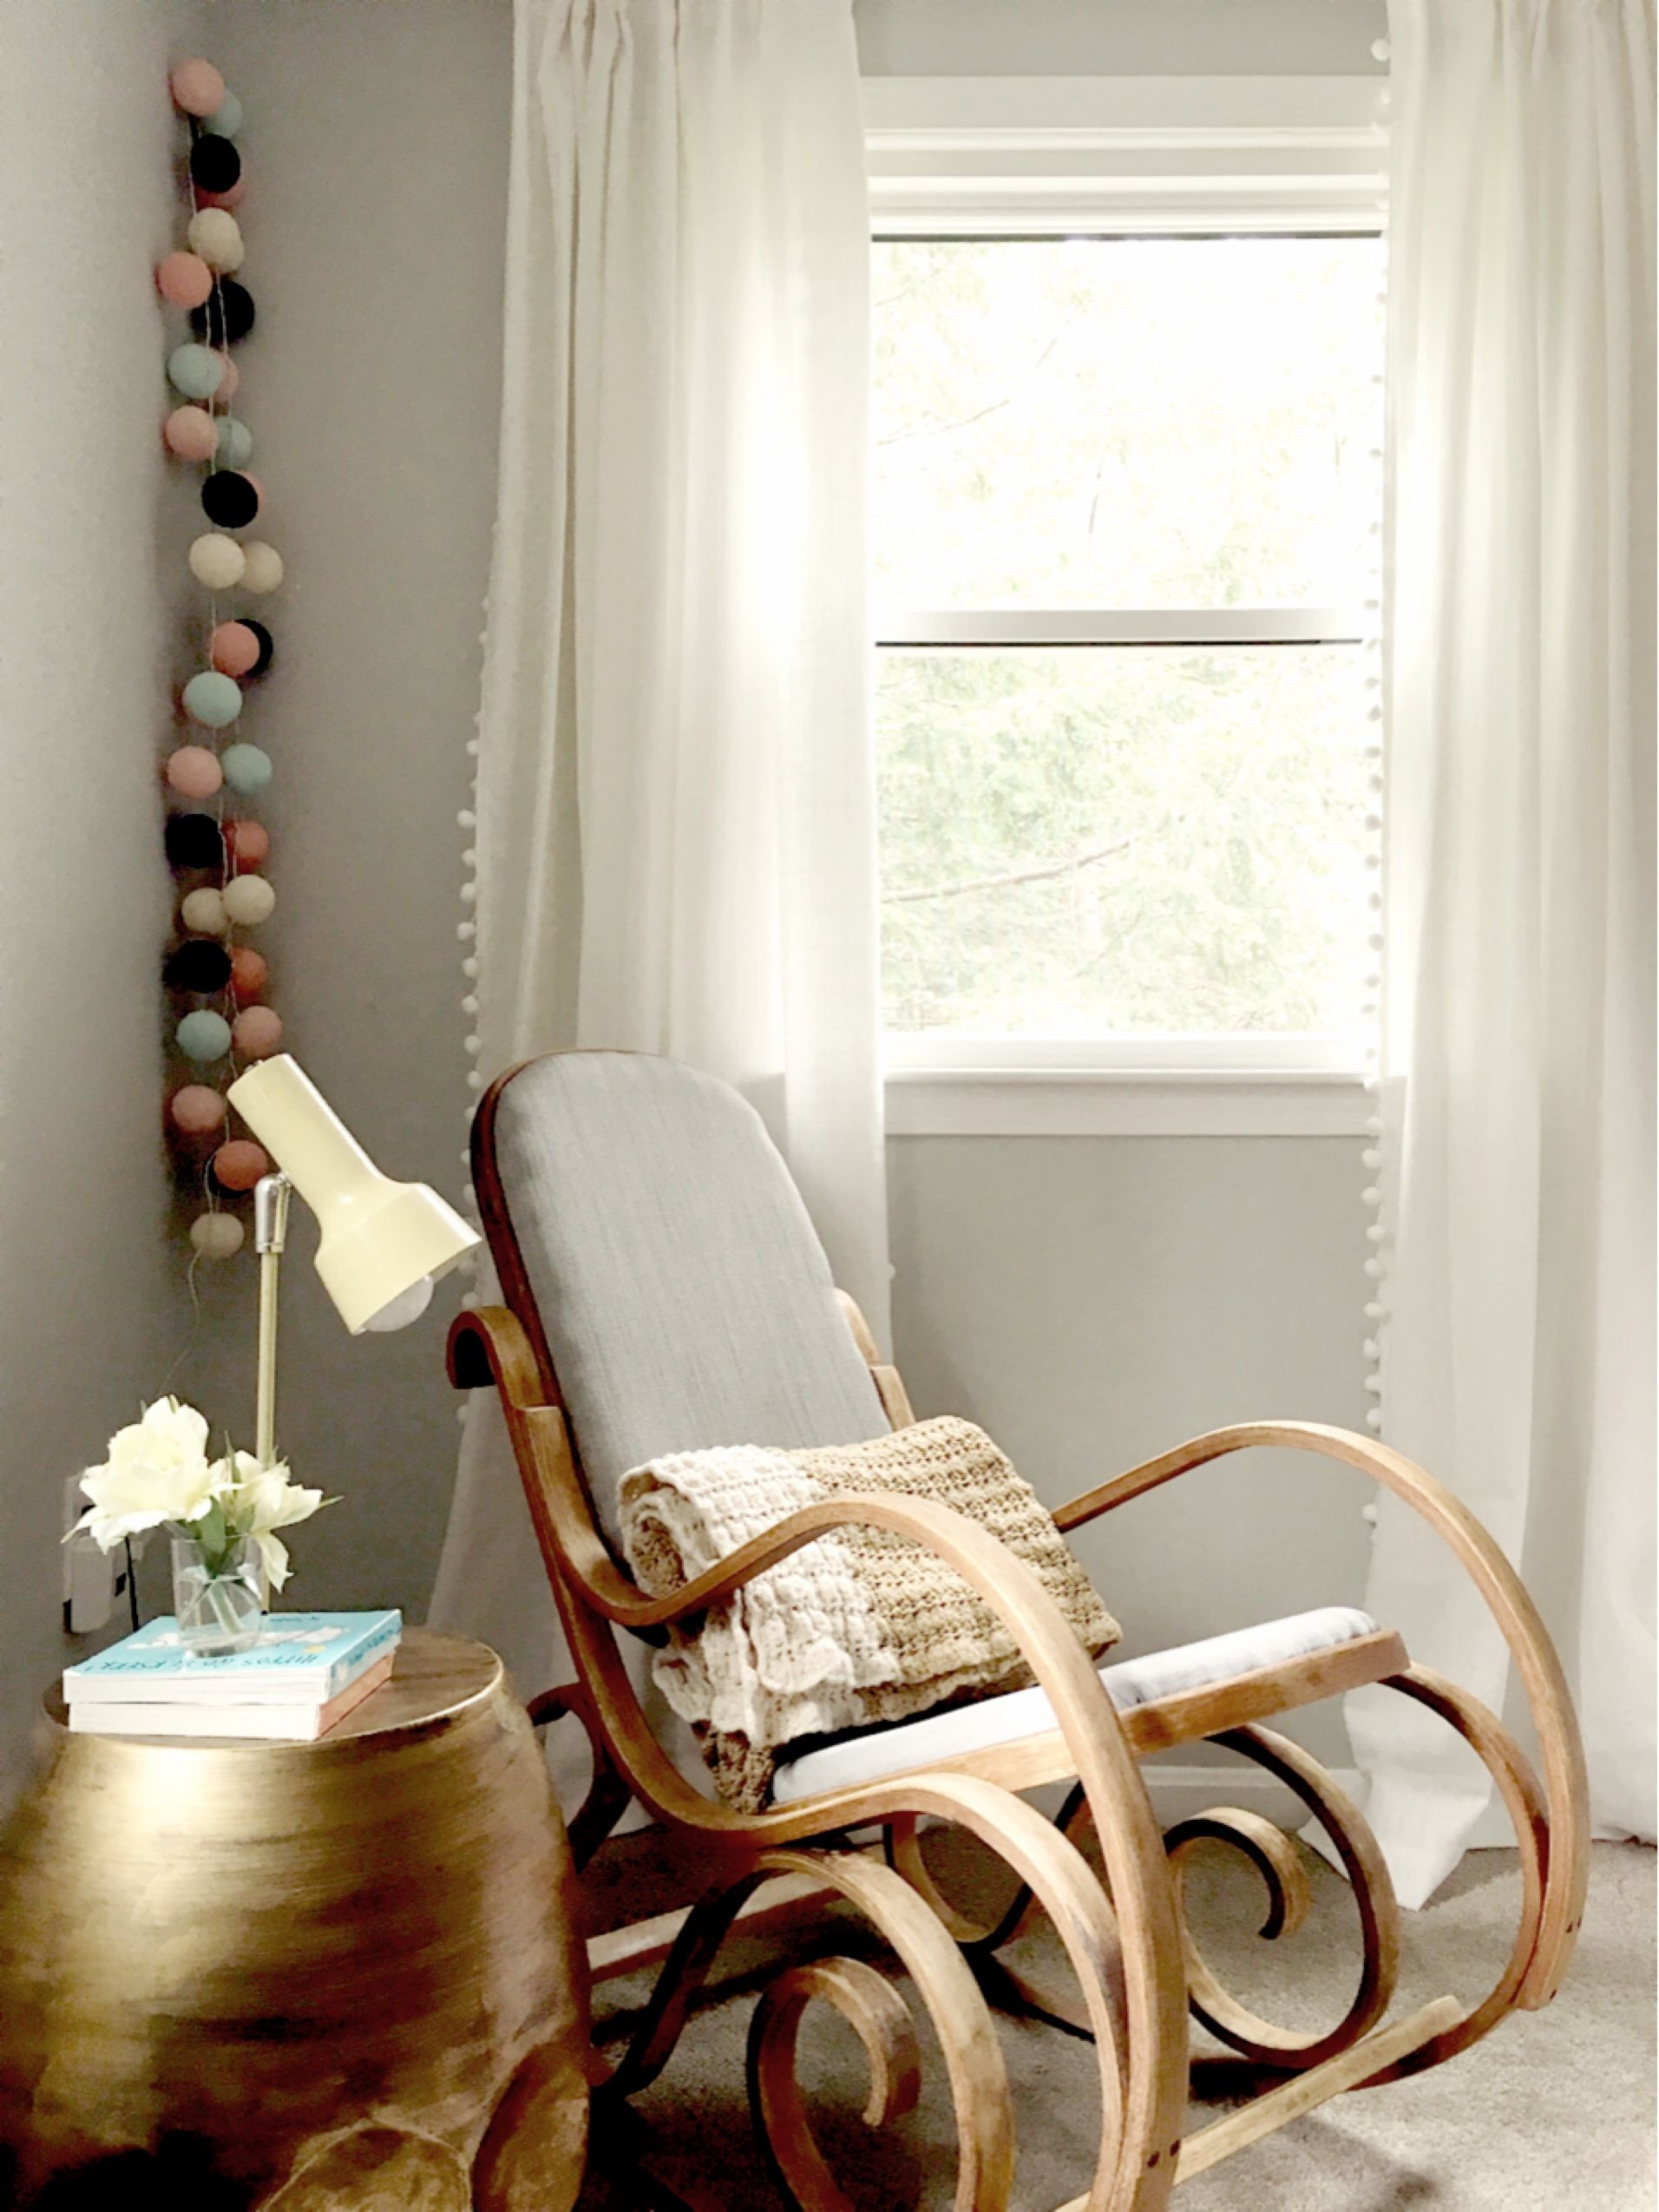 baby room rocking chair patio chairs metal gender neutral nursery benjamin moore moonshine vintage bentwood white pom poms curtains